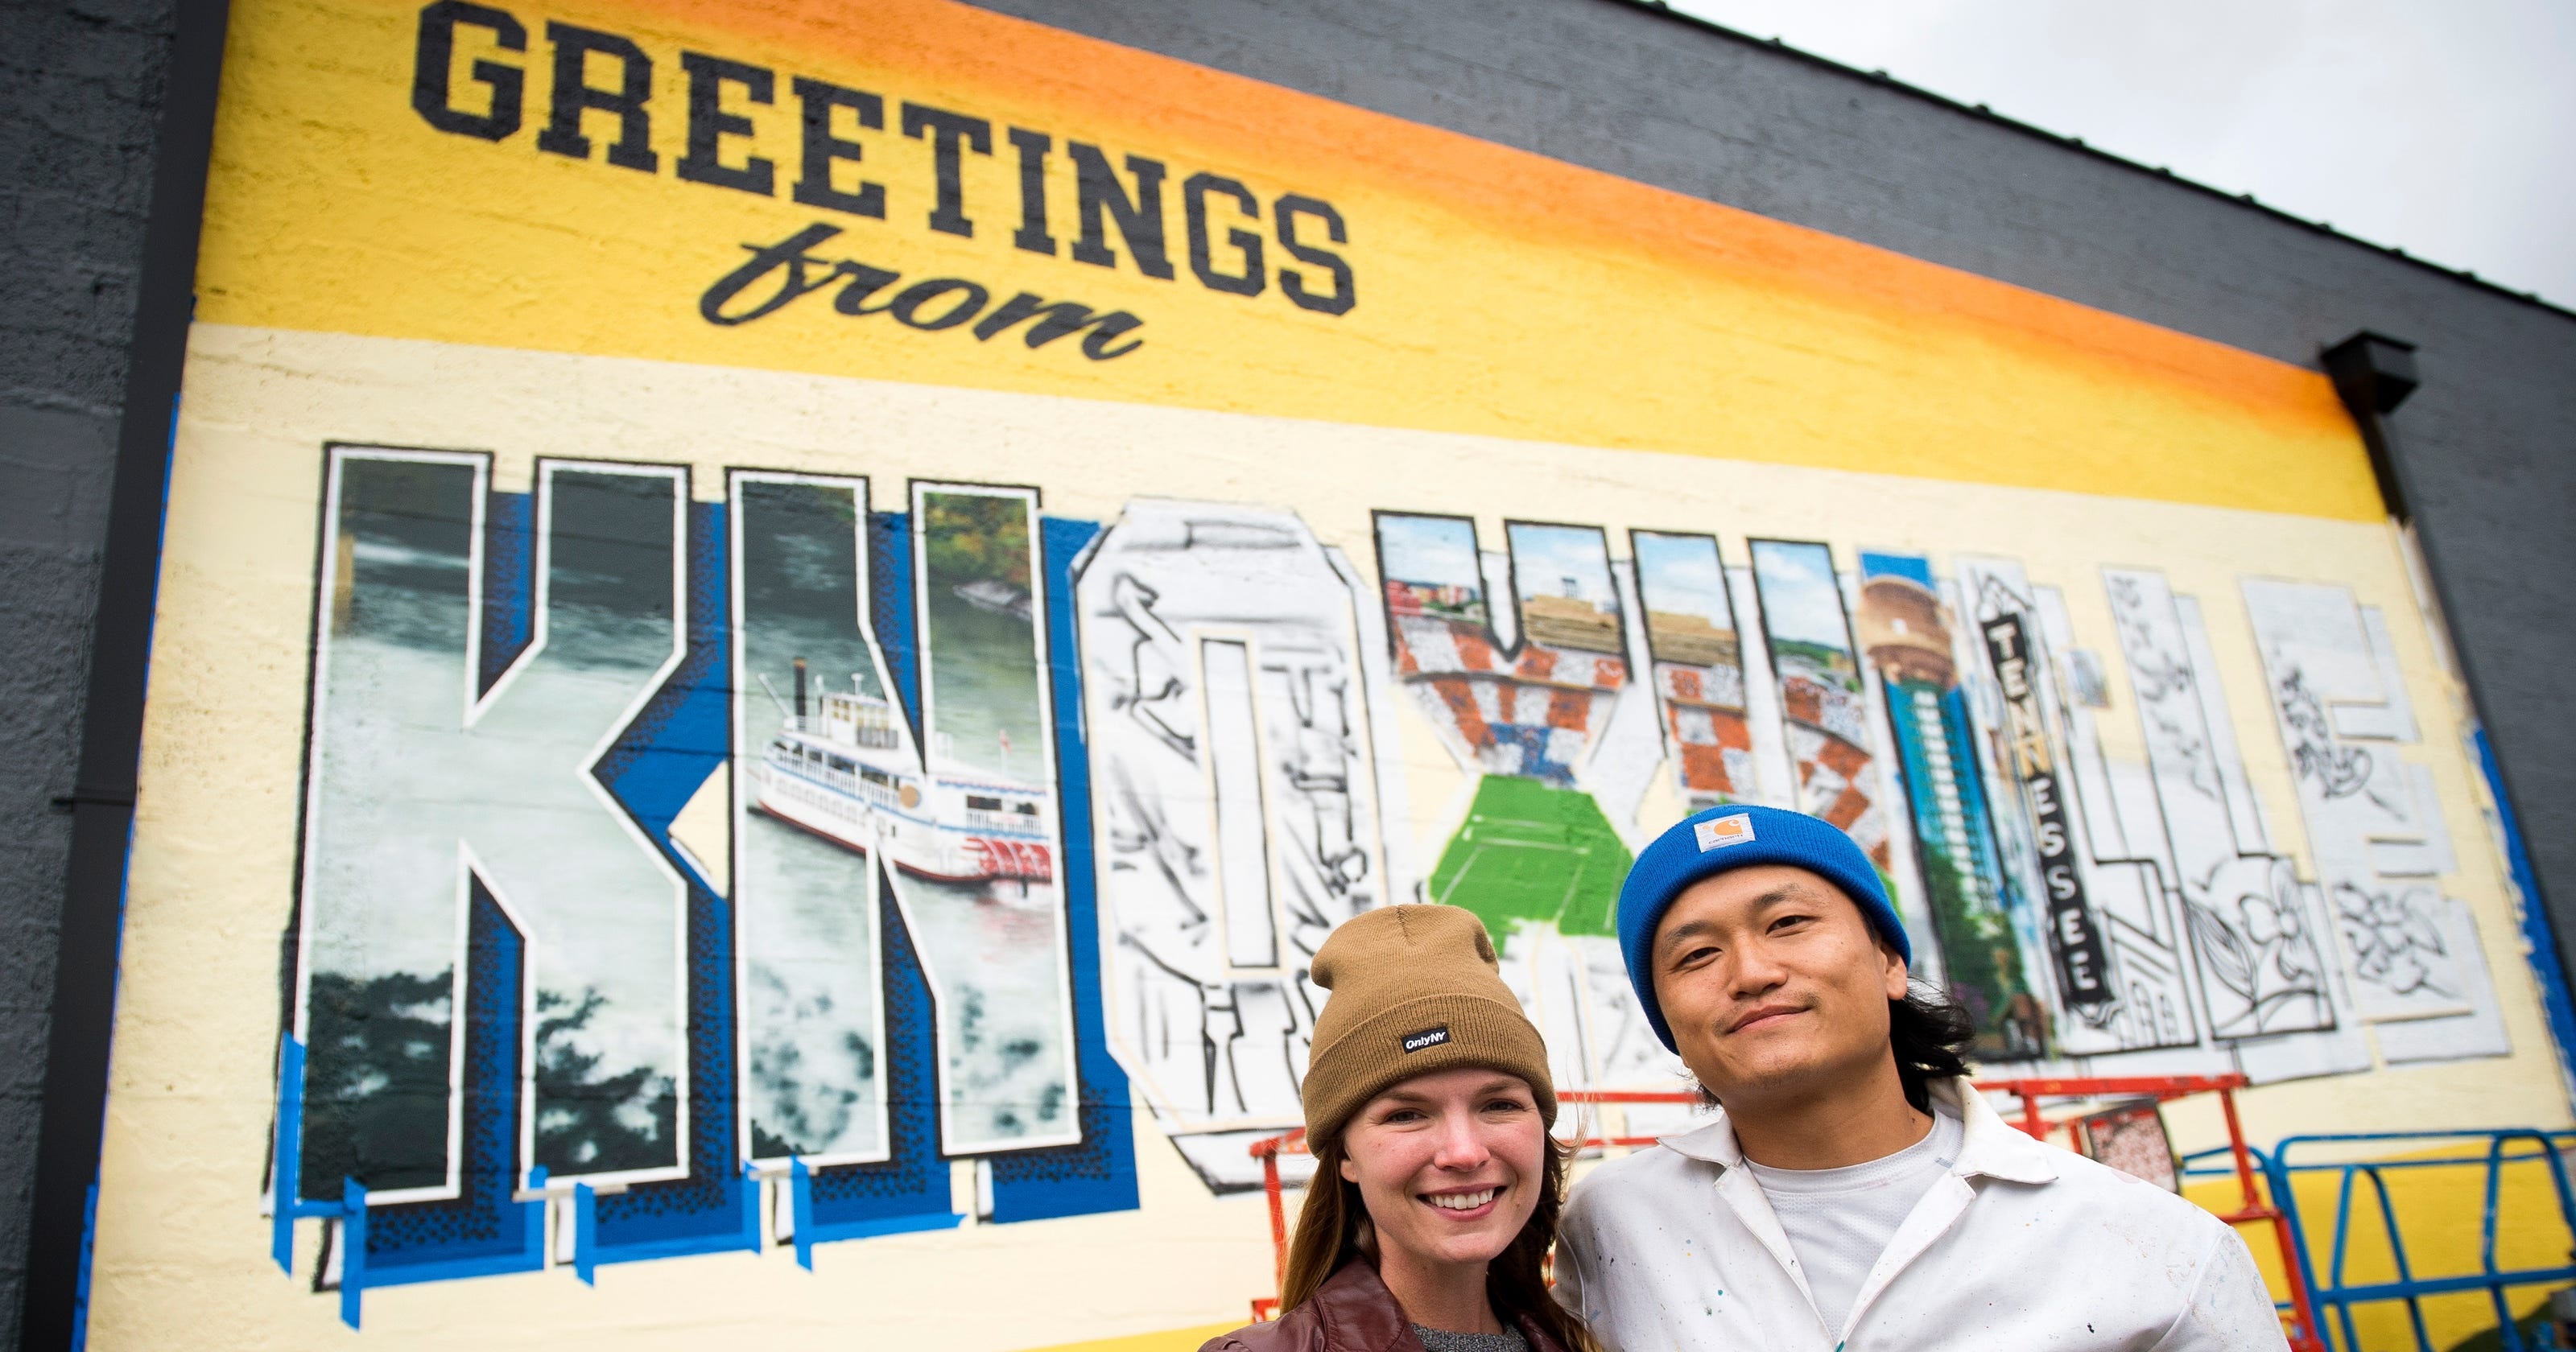 Greetings From Knoxville Mural Part Of National Plan